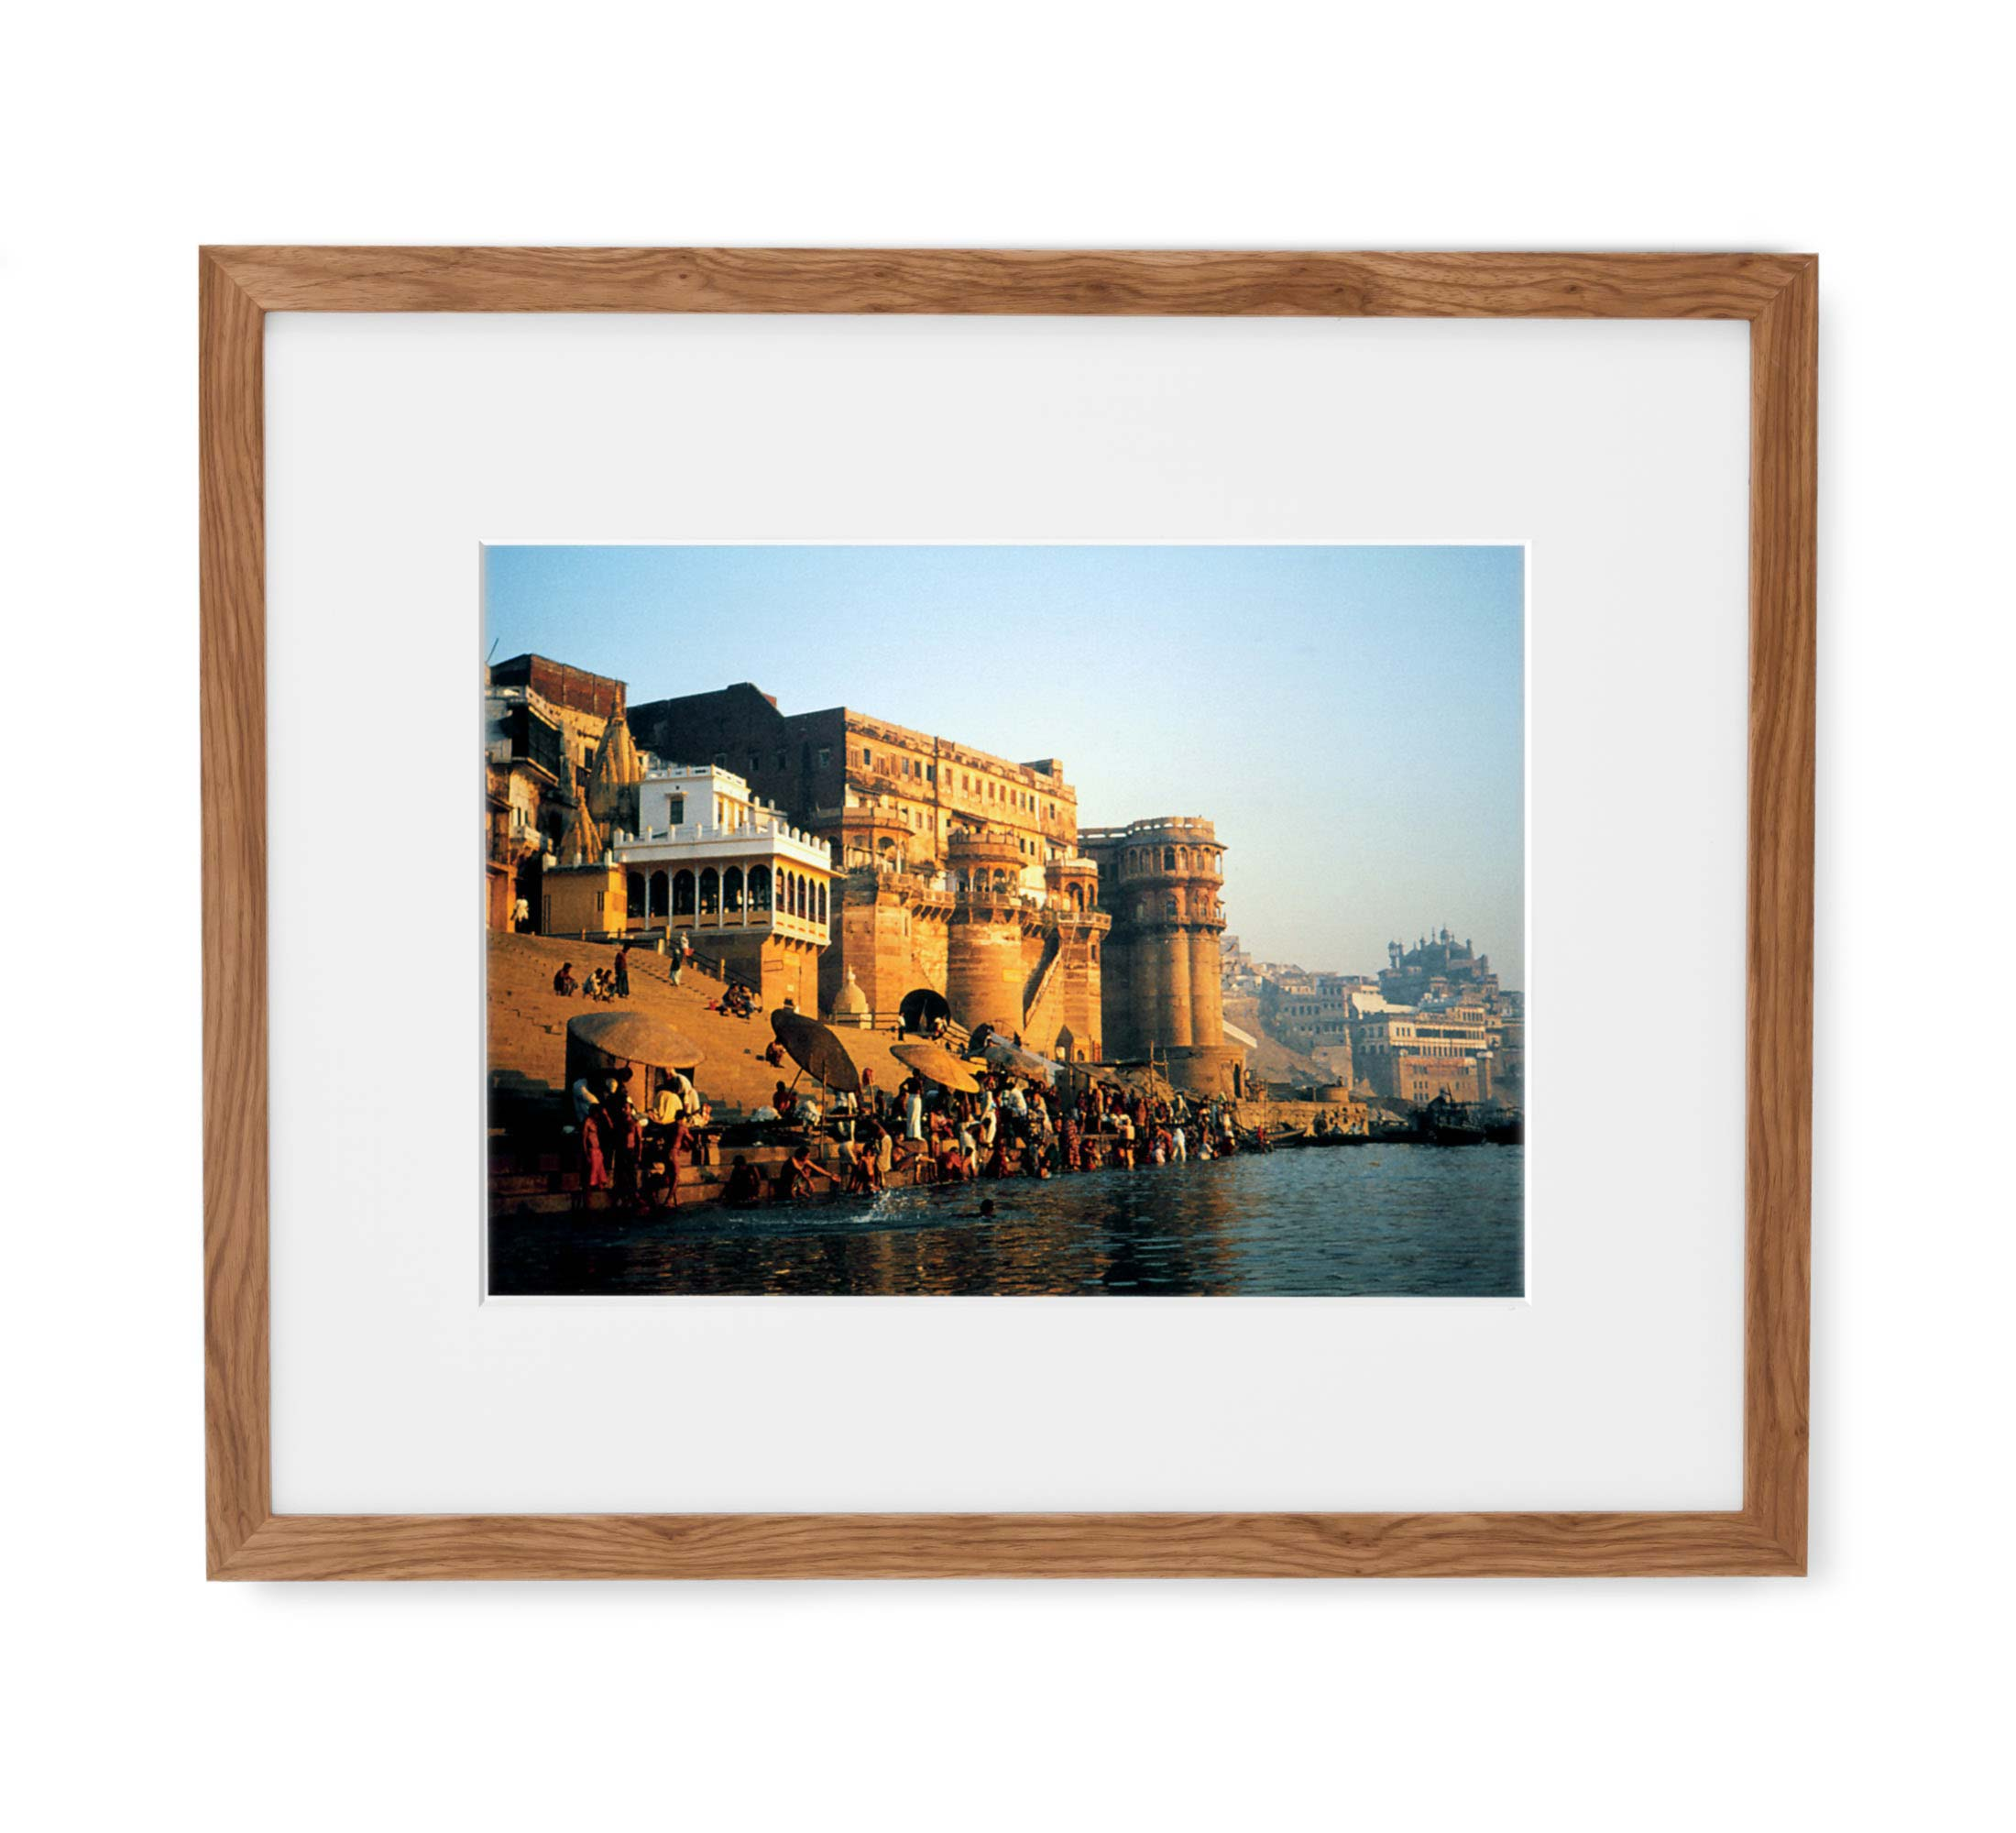 Golden Ganges Framed Light Wood